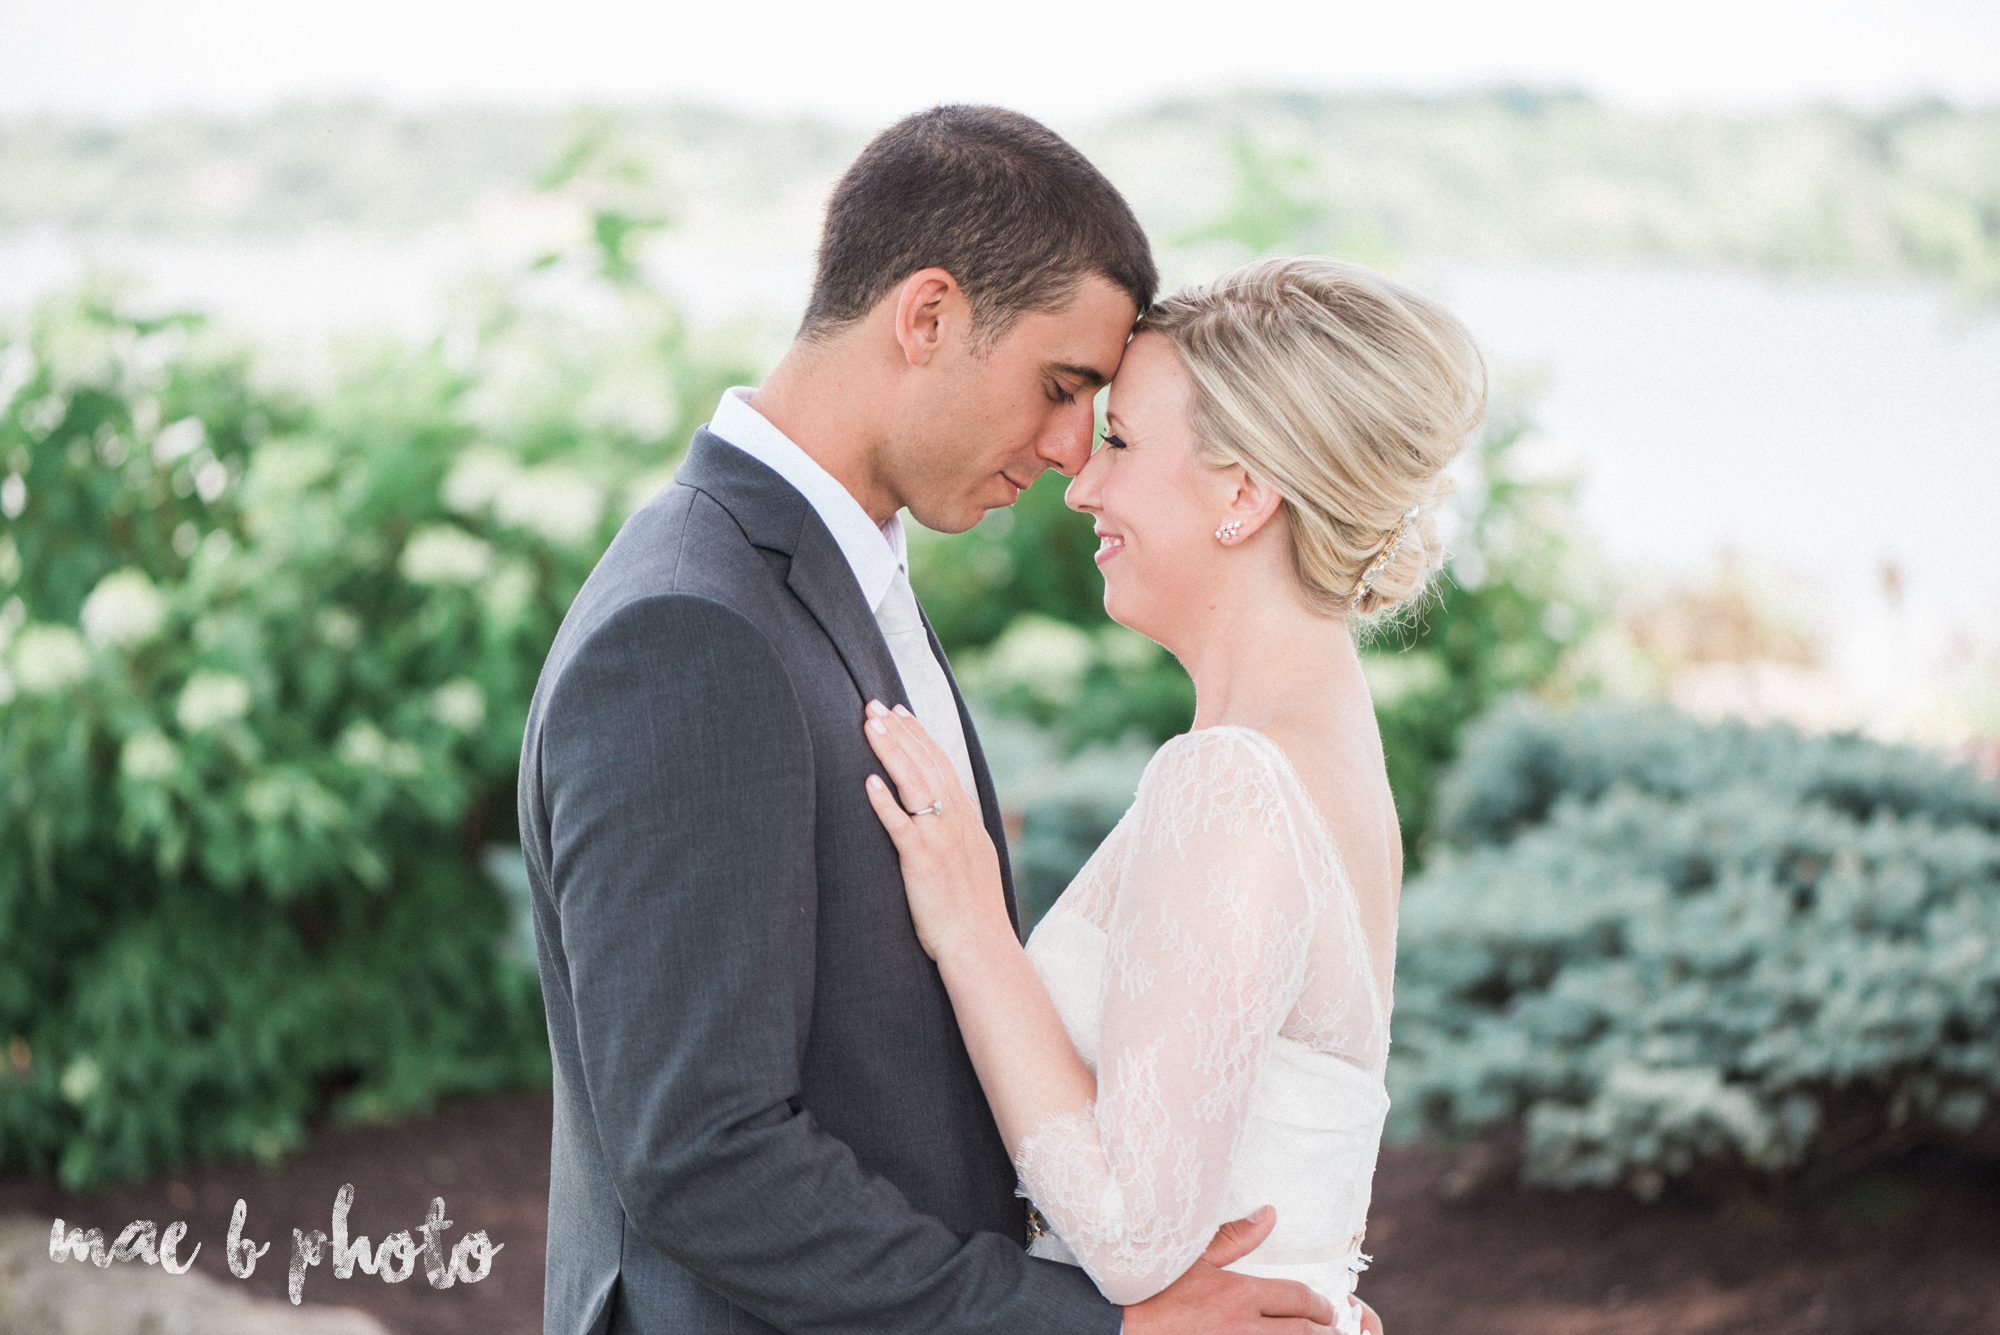 emily and michael's industrial chic summer country club wedding at the lake club in poland ohio photographed by cleveland wedding photographer mae b photo-56.jpg